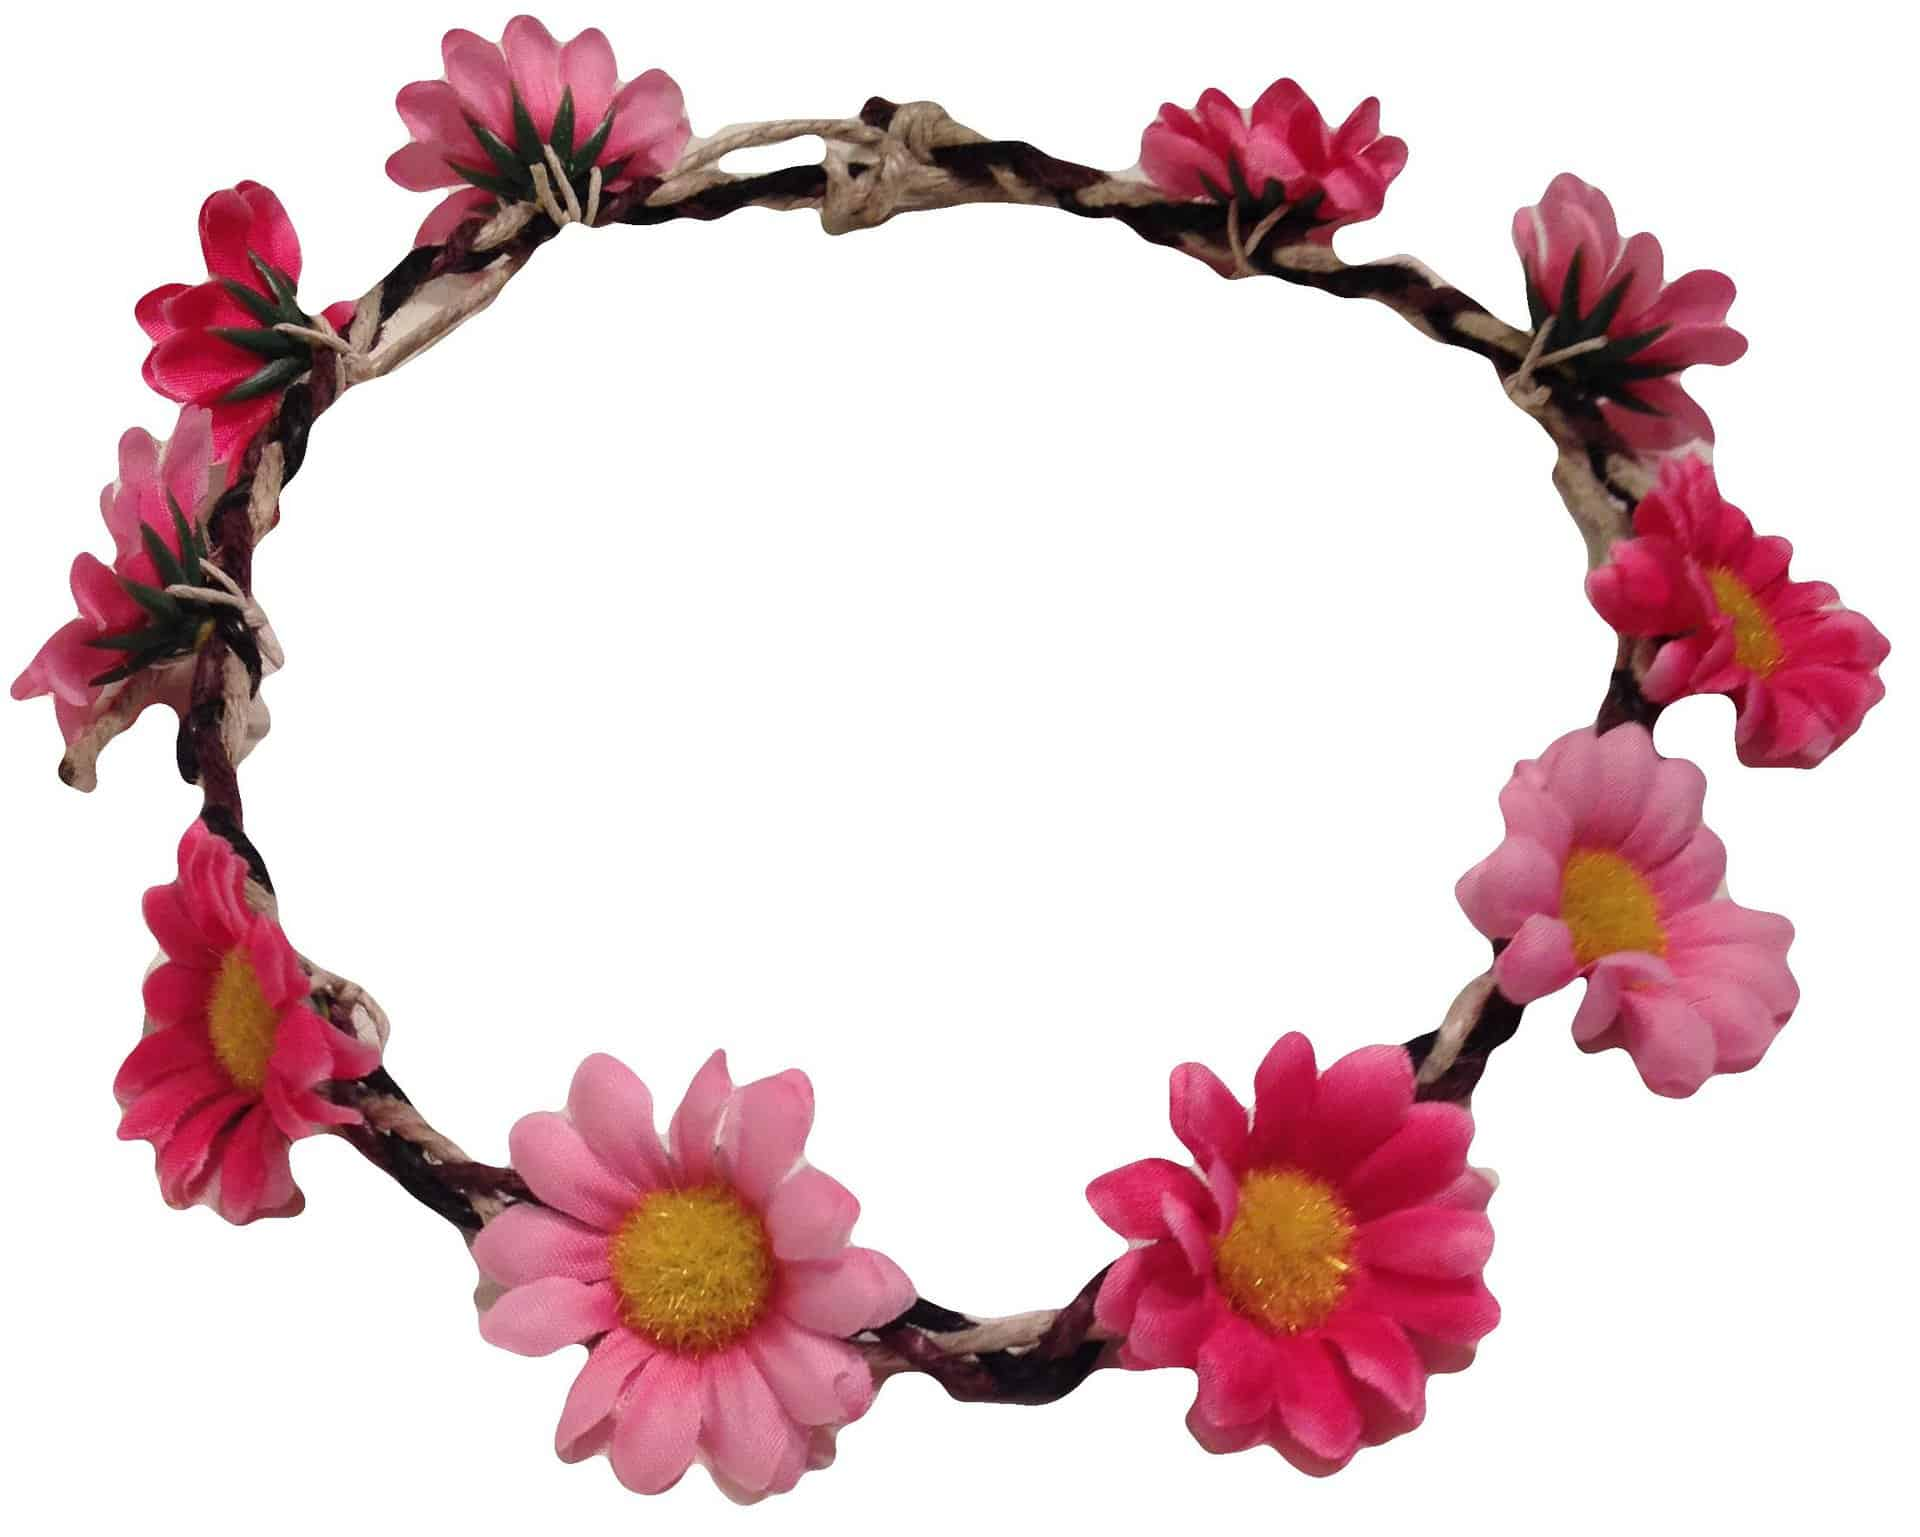 Flower Headbands Hemp AuthorityHemp Authority